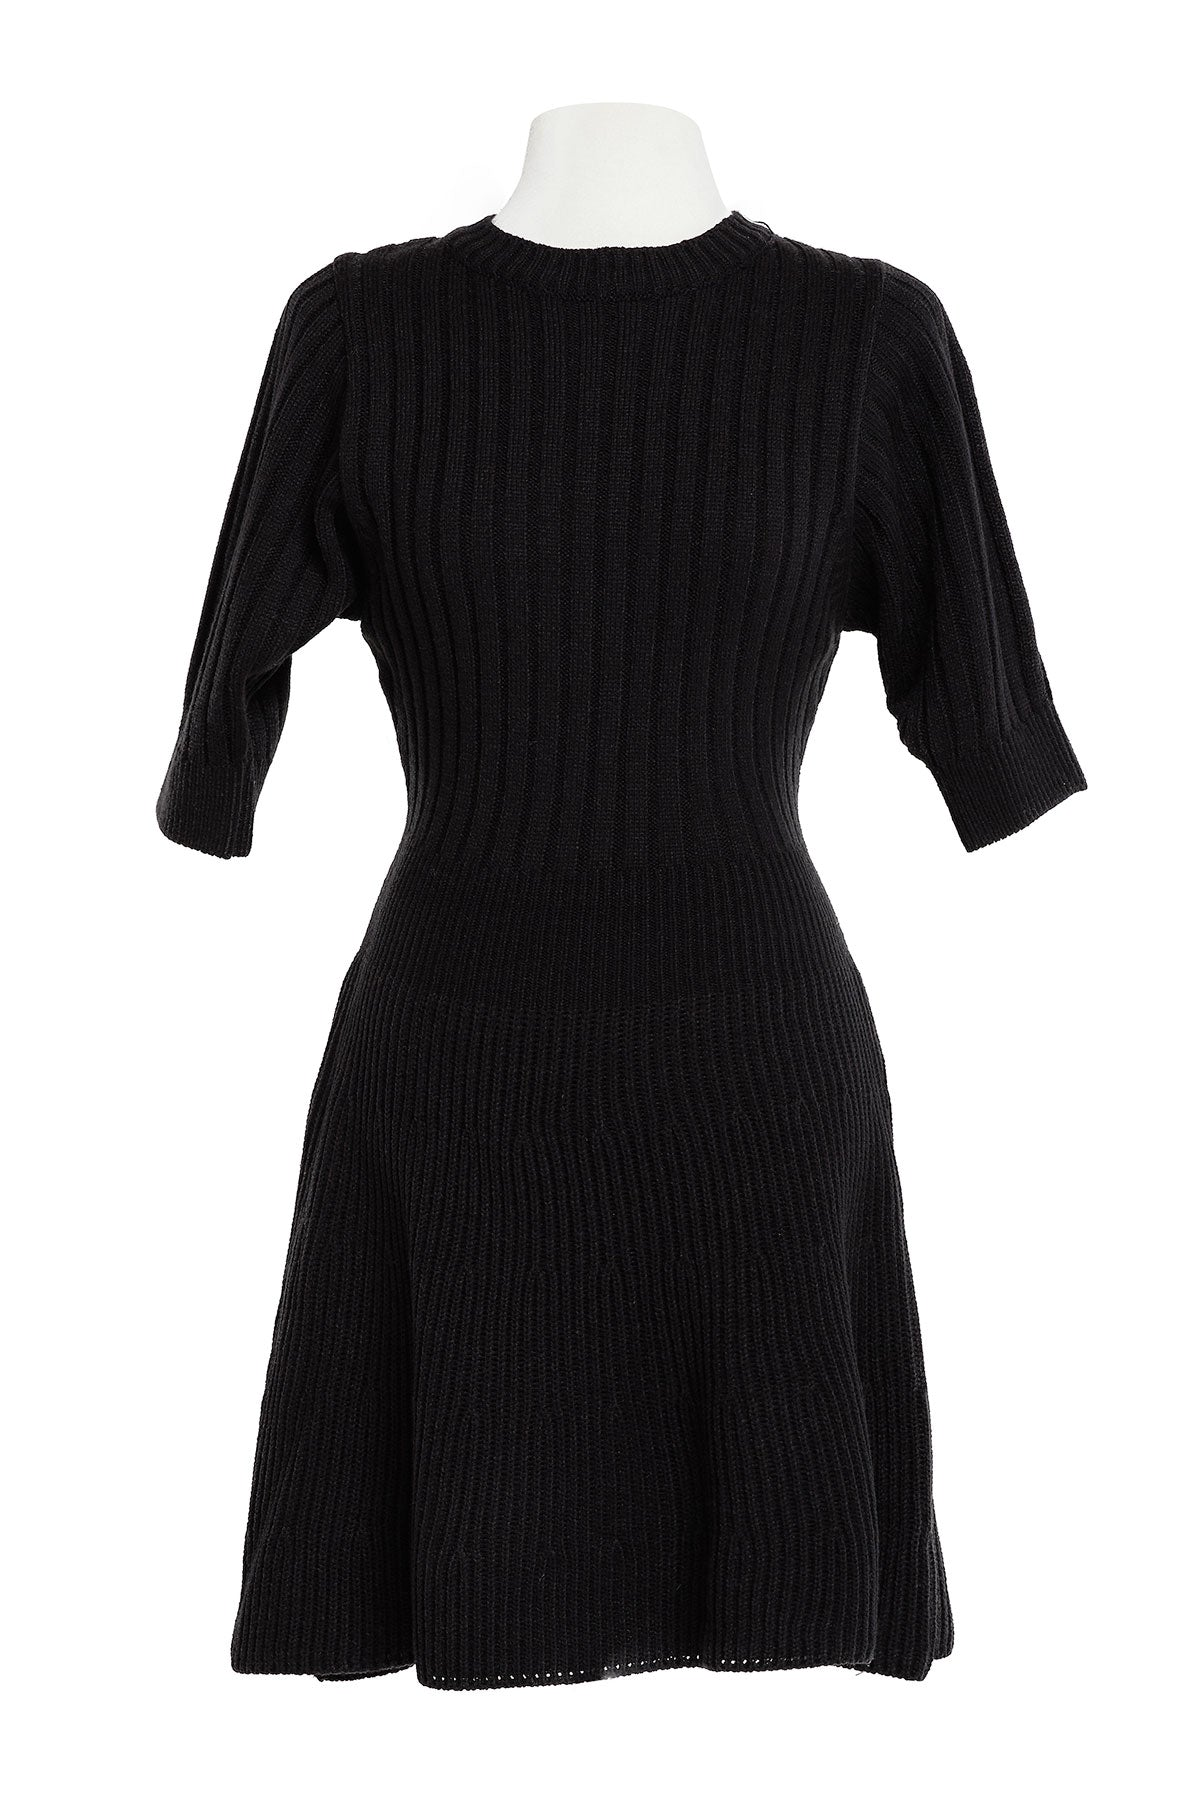 Bianca Puff Sleeve Knit Dress-2 Colors (Pre-Order)